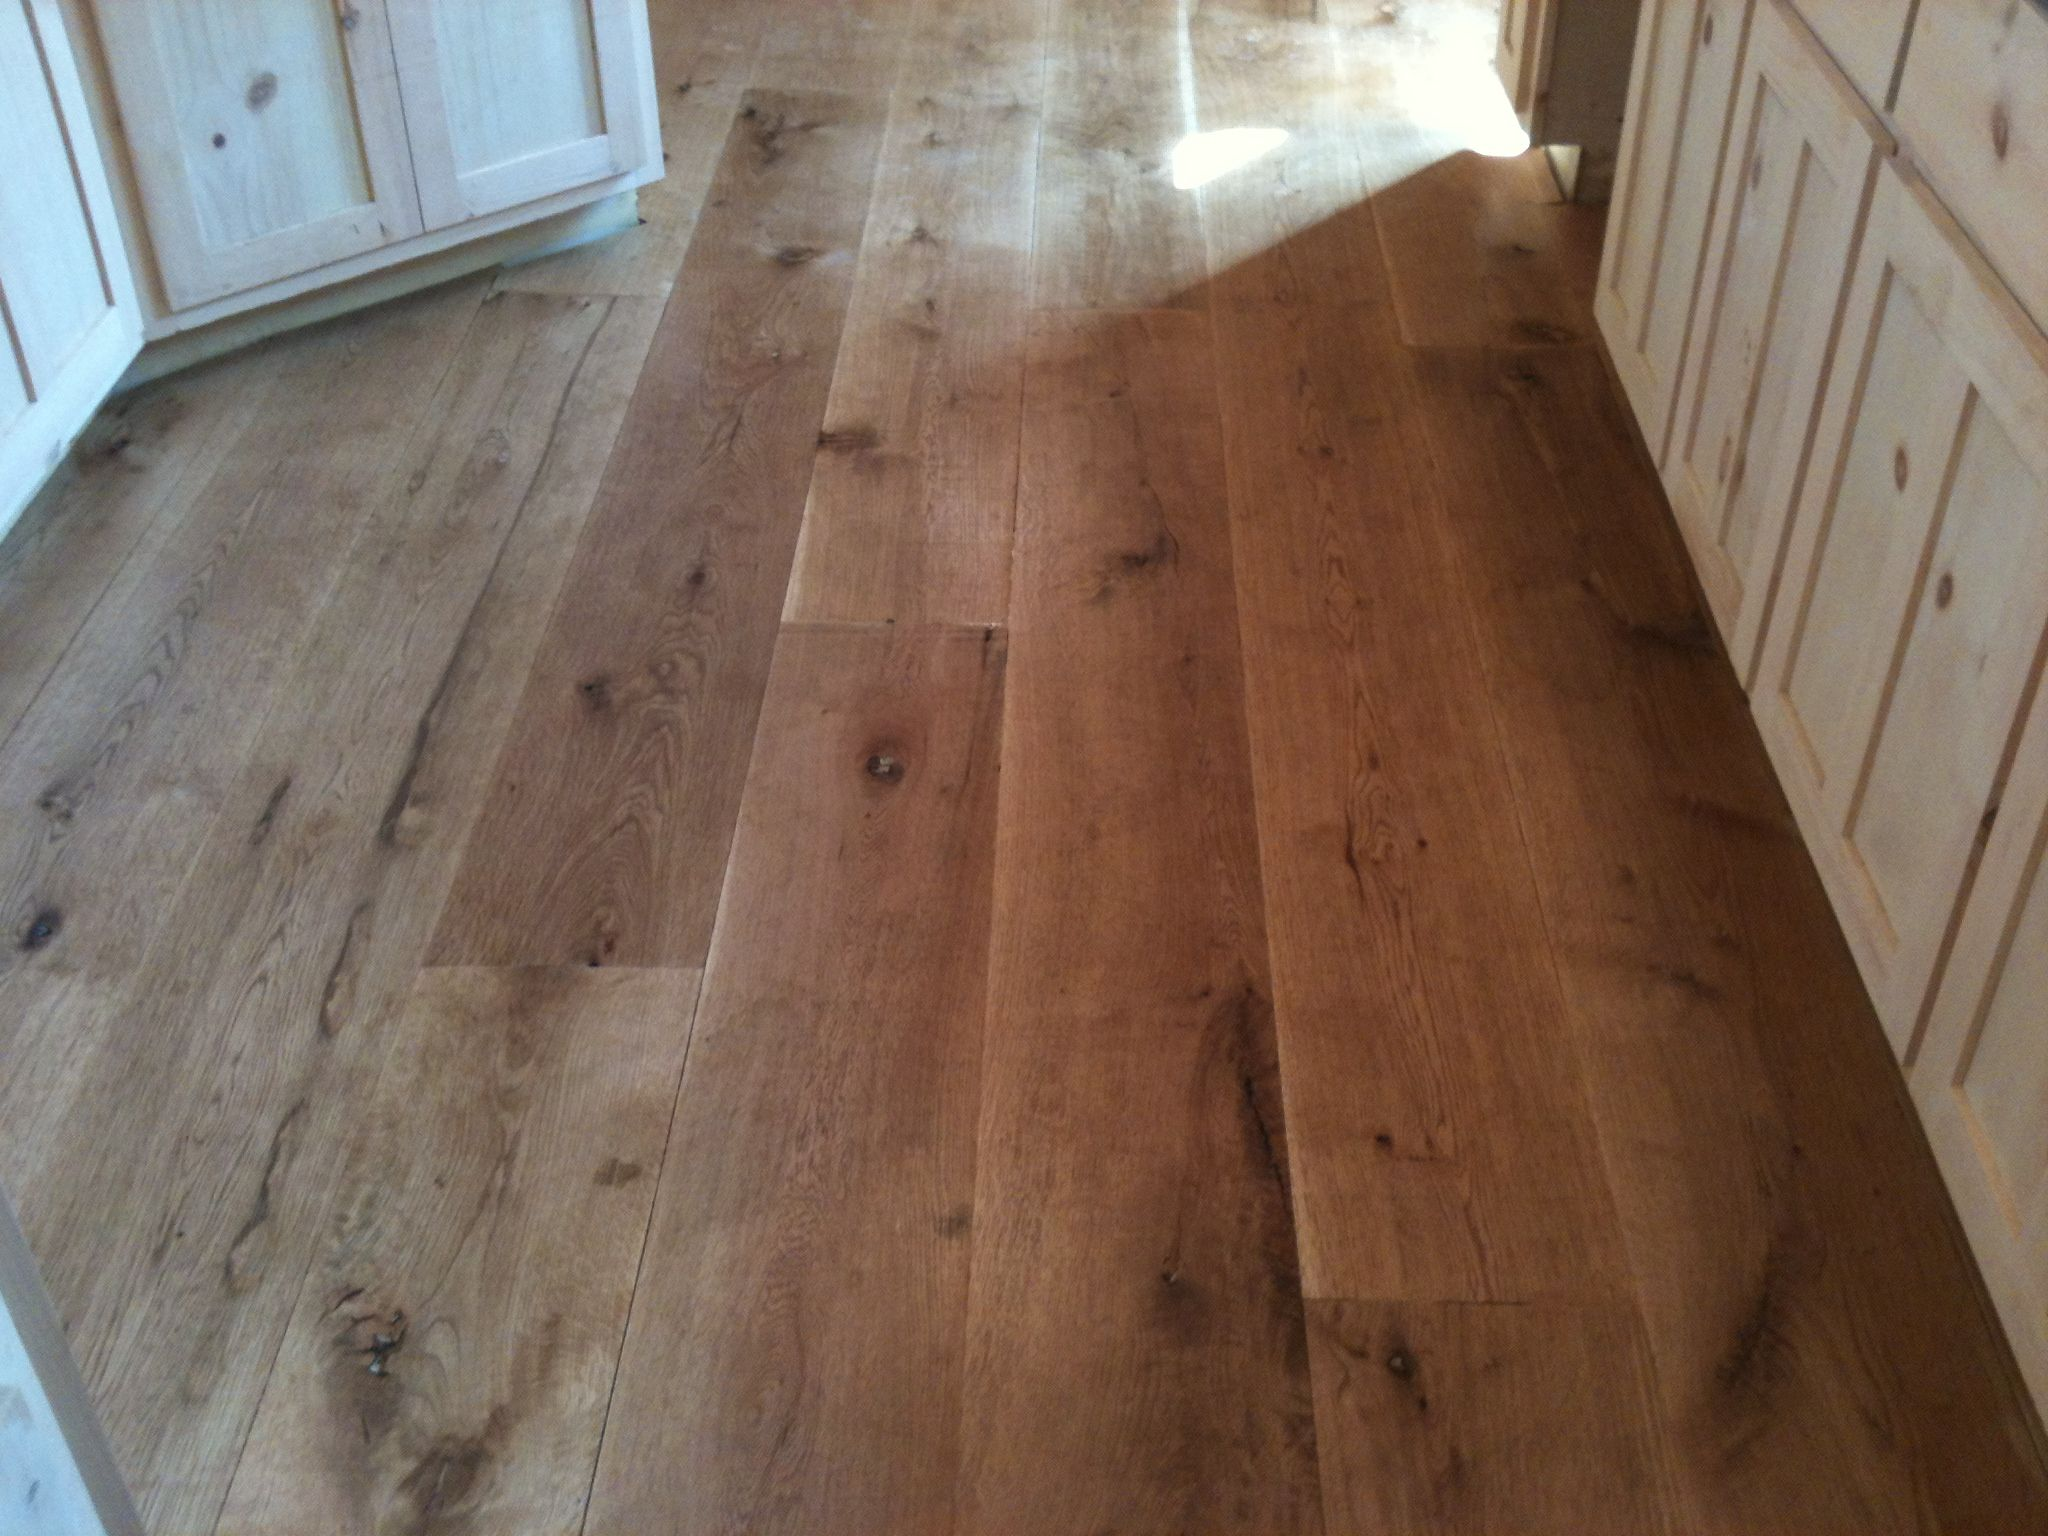 10 Wide Plank Flooring Character White Oak Hardwood Flooring Rustic Flooring Hardwood Floors Wood Floors Wide Plank